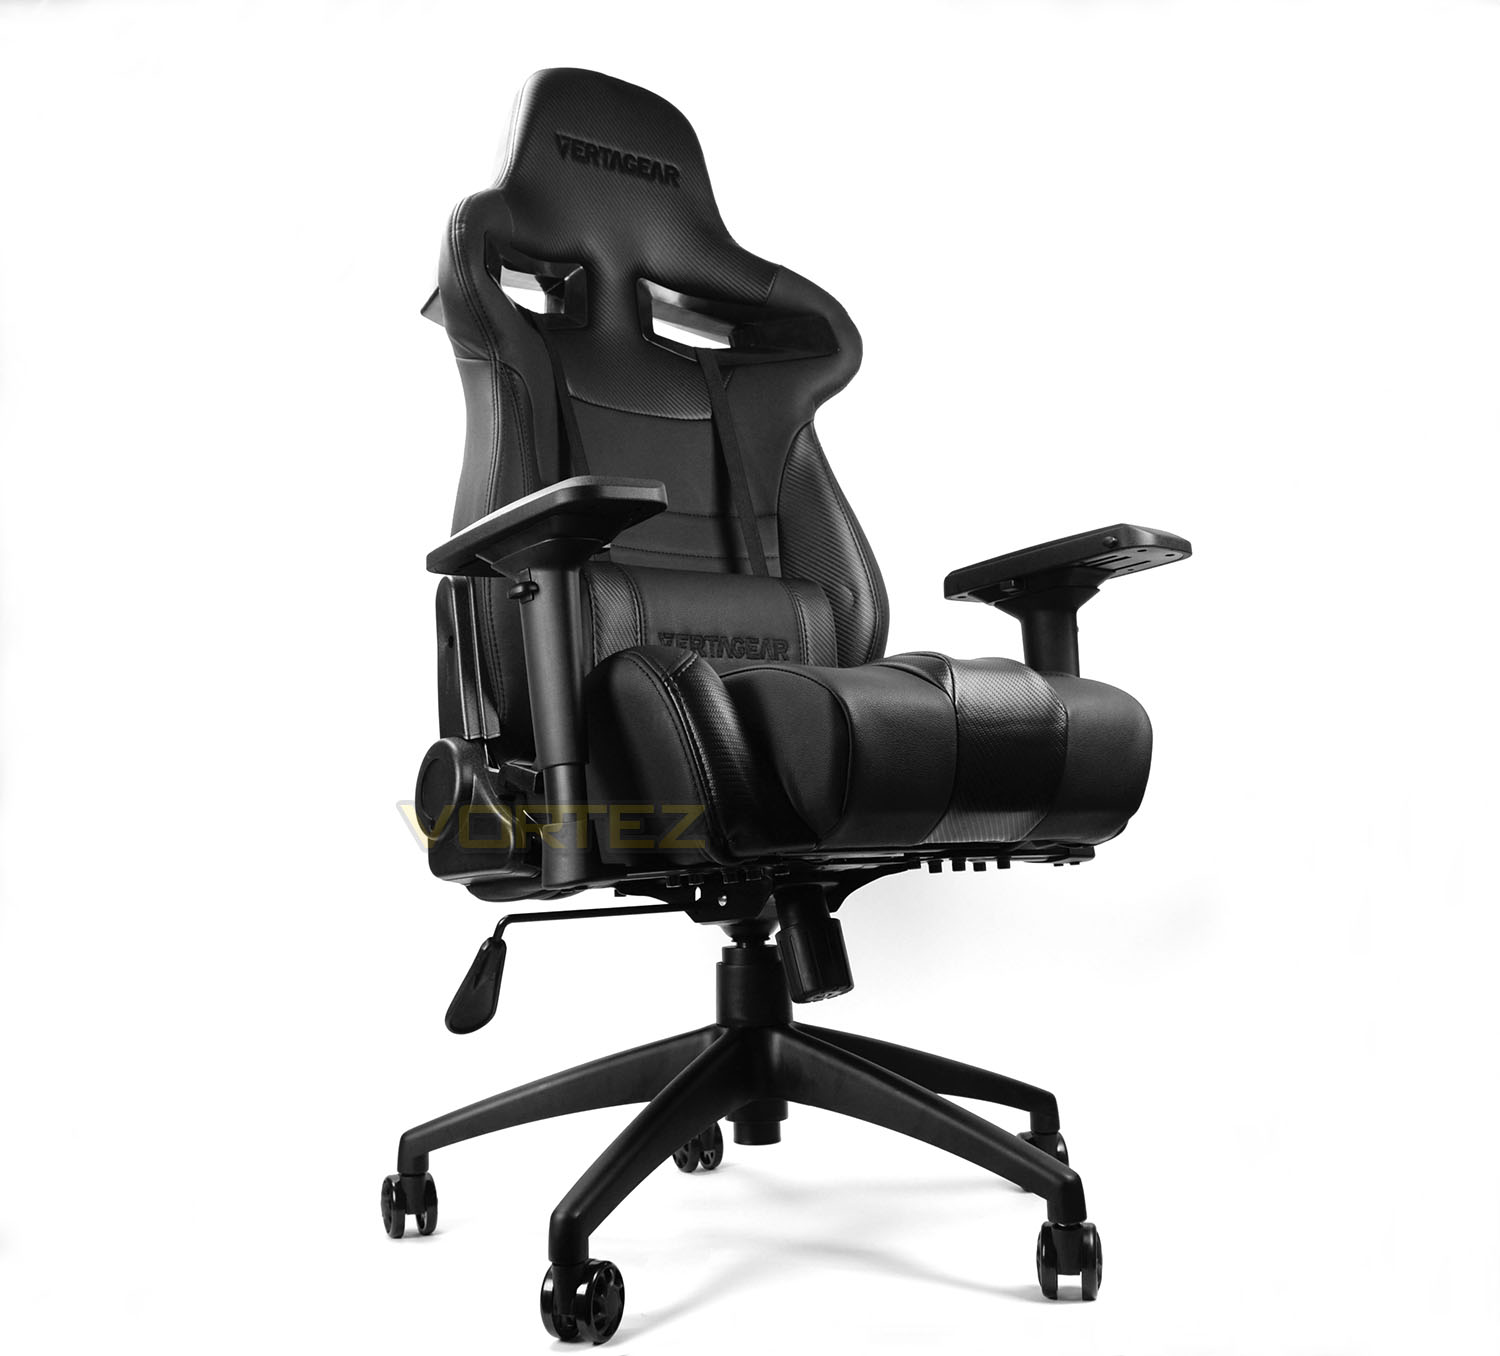 Tremendous Vertagear Racing Series S Line Sl4000 Review Introduction Andrewgaddart Wooden Chair Designs For Living Room Andrewgaddartcom